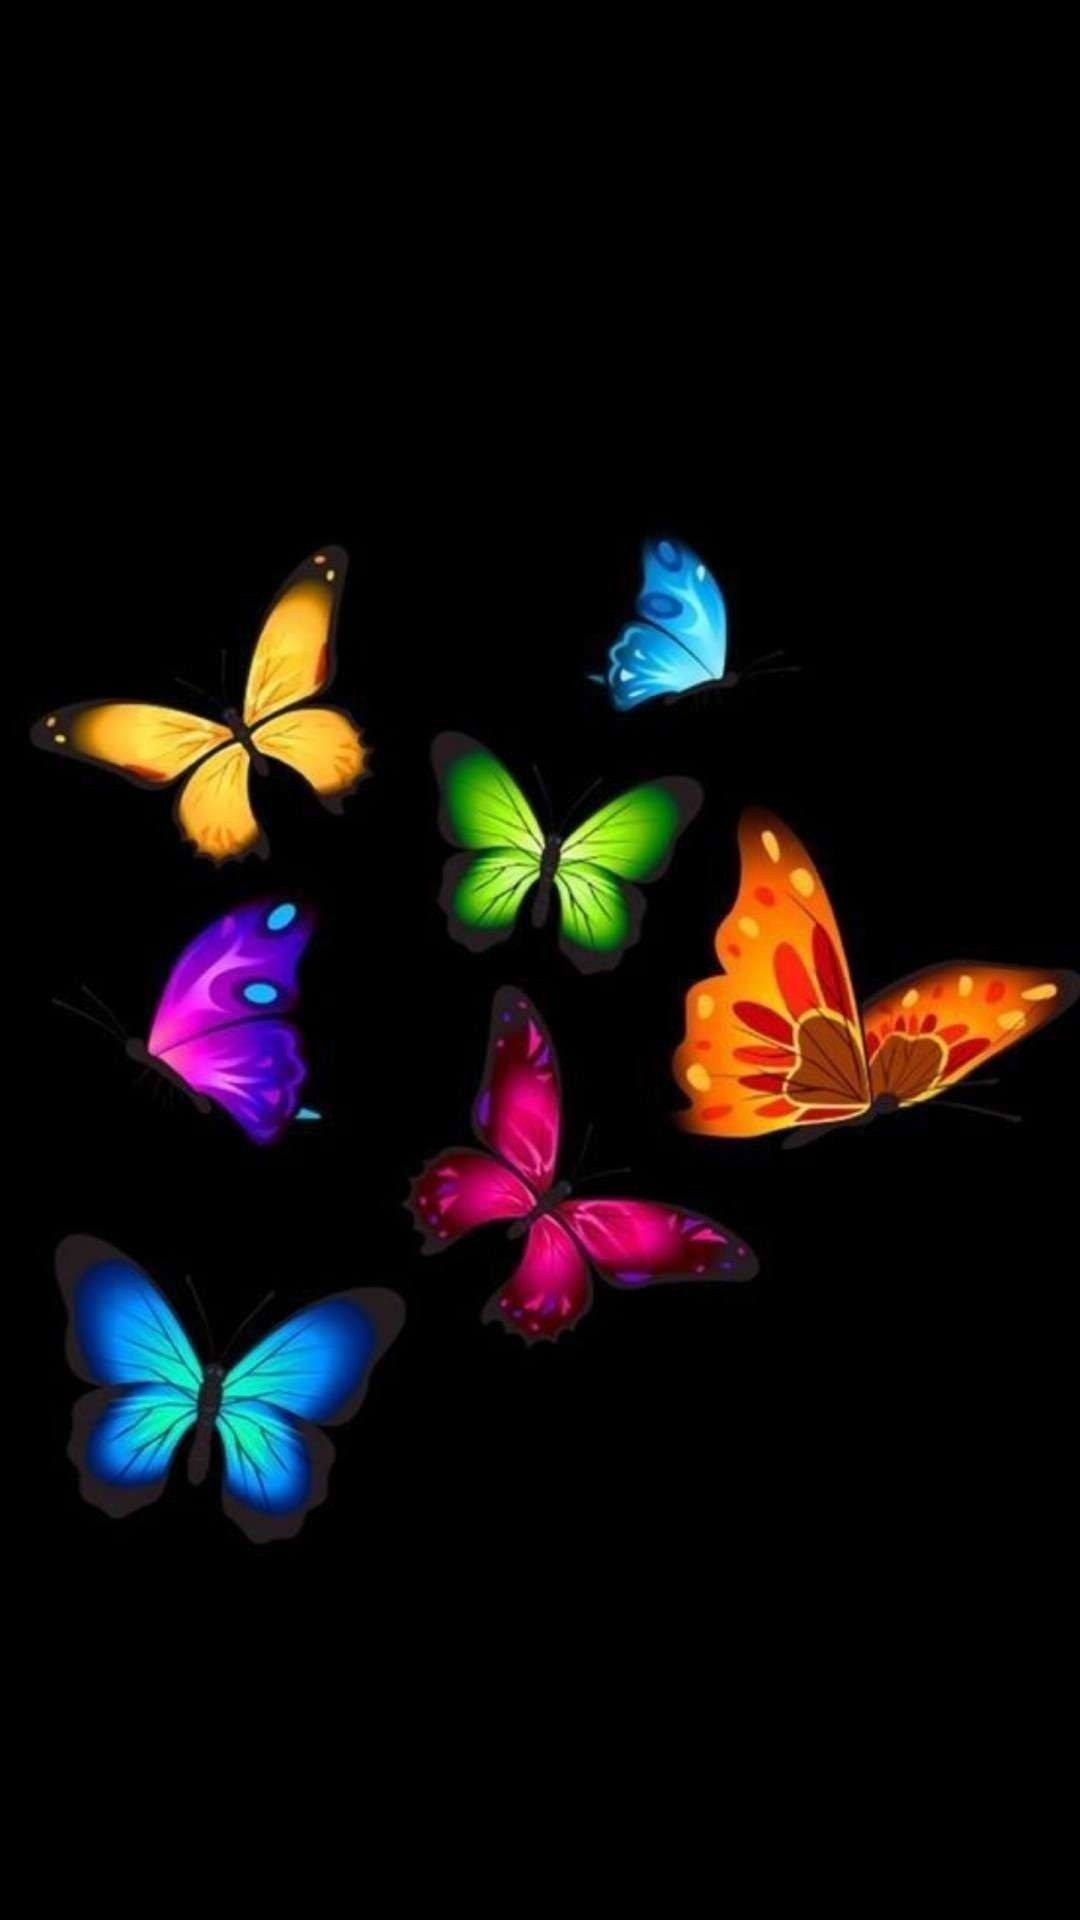 Butterfly Art, Butterflies, Wallpapers Android, Stuffing, - Android Butterfly Wallpaper Hd , HD Wallpaper & Backgrounds